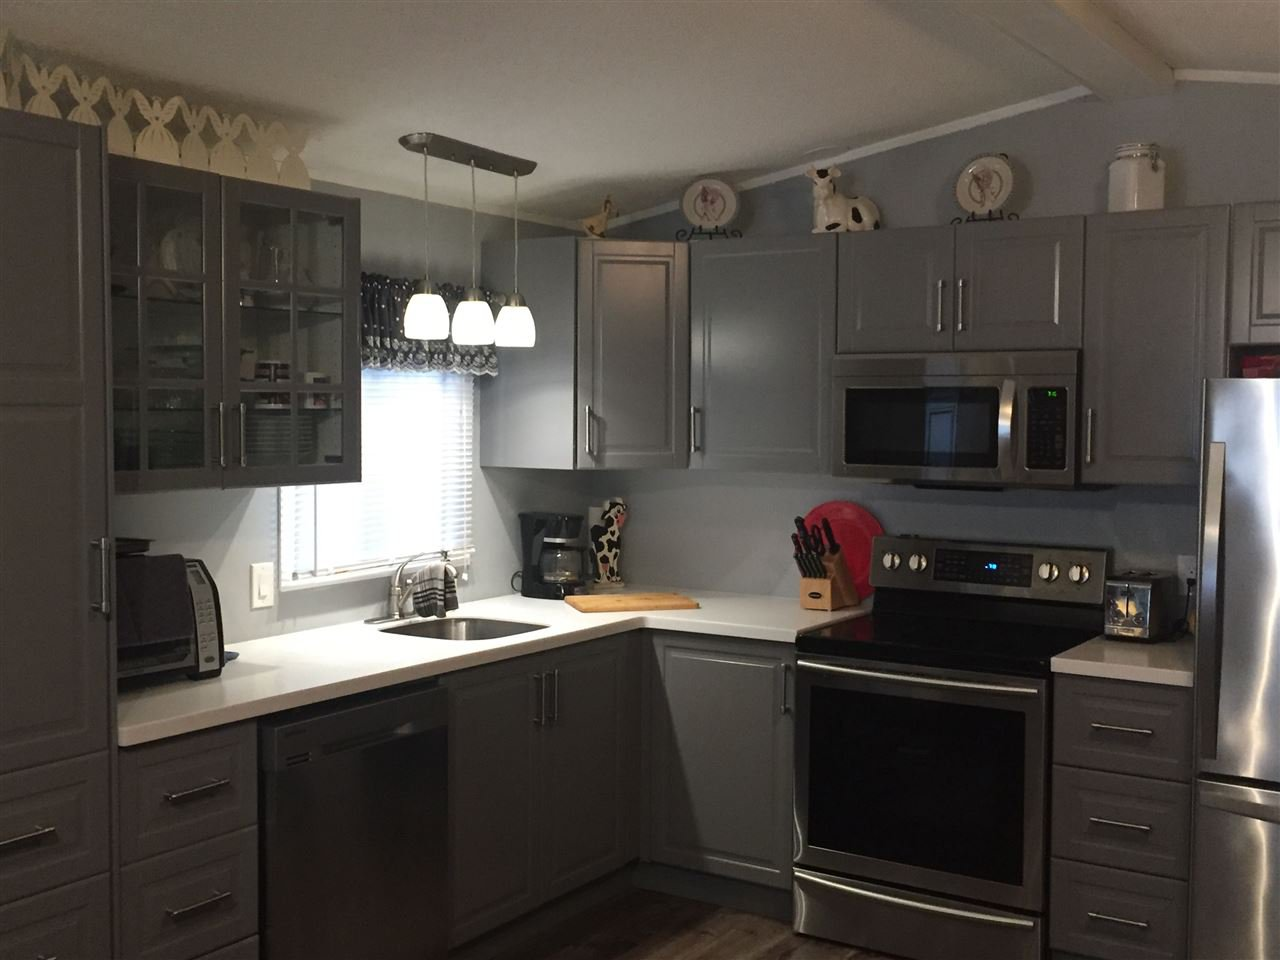 """Photo 8: Photos: 107 3300 HORN Street in Abbotsford: Central Abbotsford Manufactured Home for sale in """"Georgian Park"""" : MLS®# R2162329"""